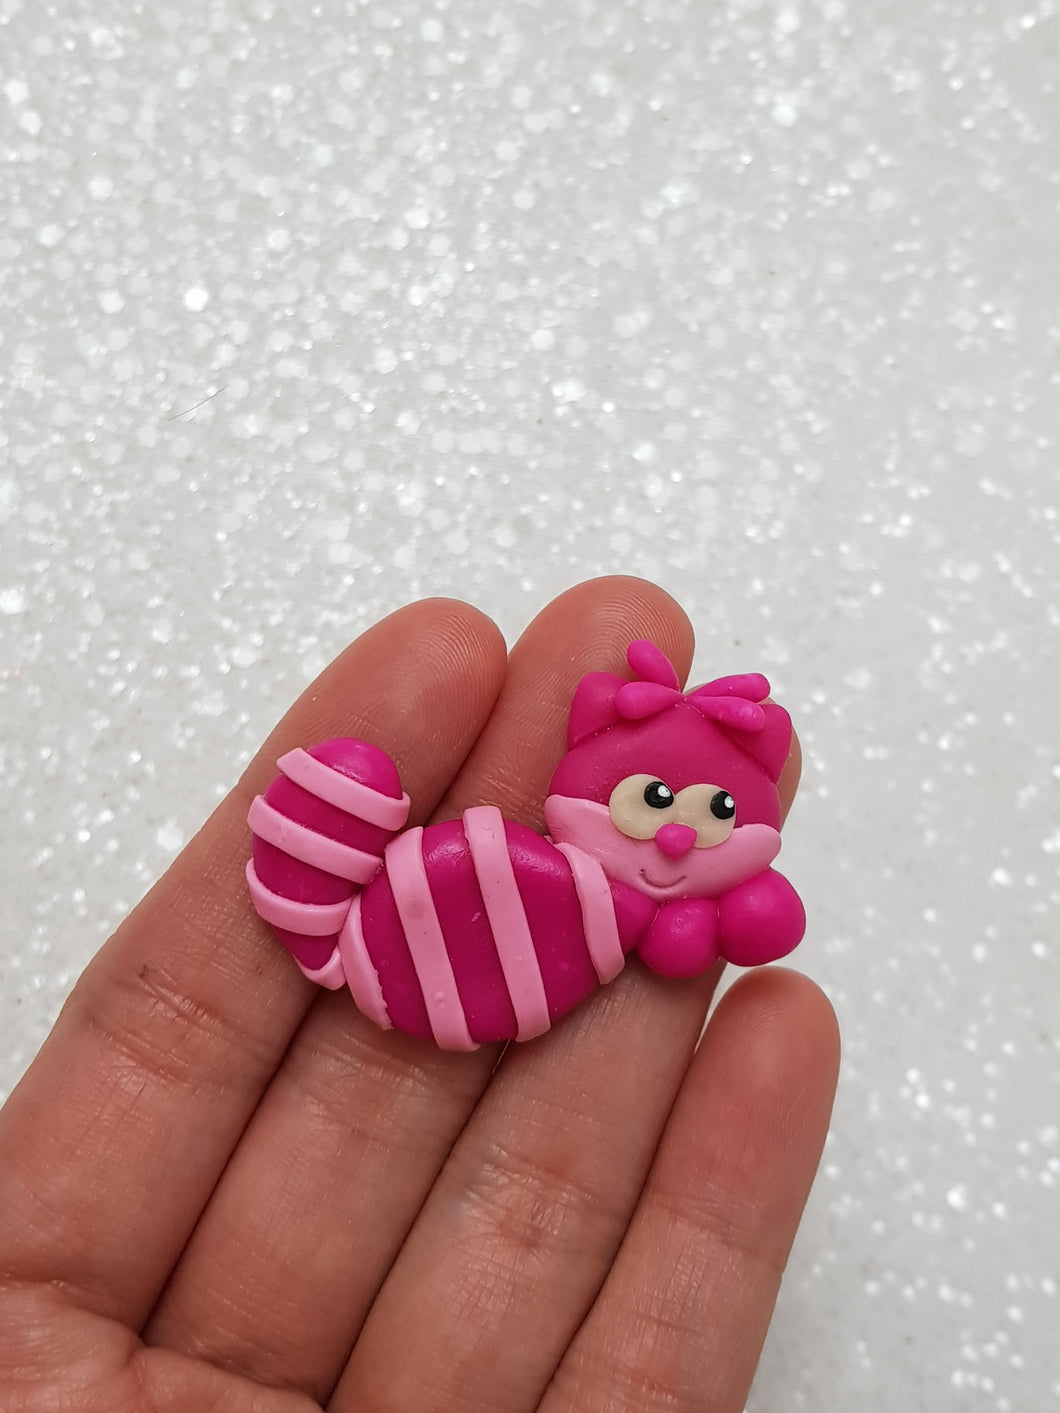 Clay Charm - NEW PINK CAT-EYES Glow in The Dark - Crafty Mood